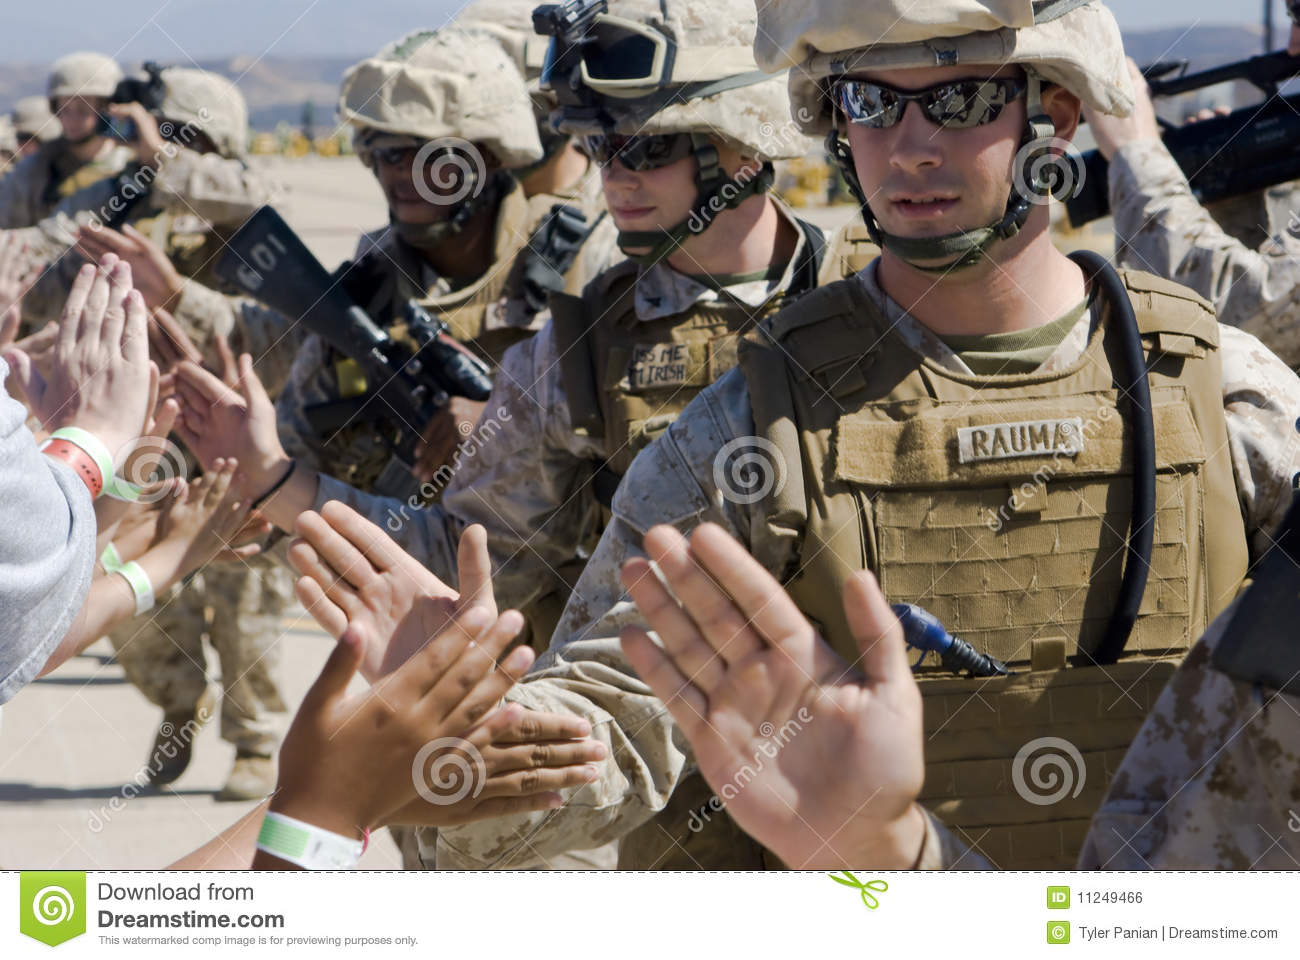 High-fives from soldiers